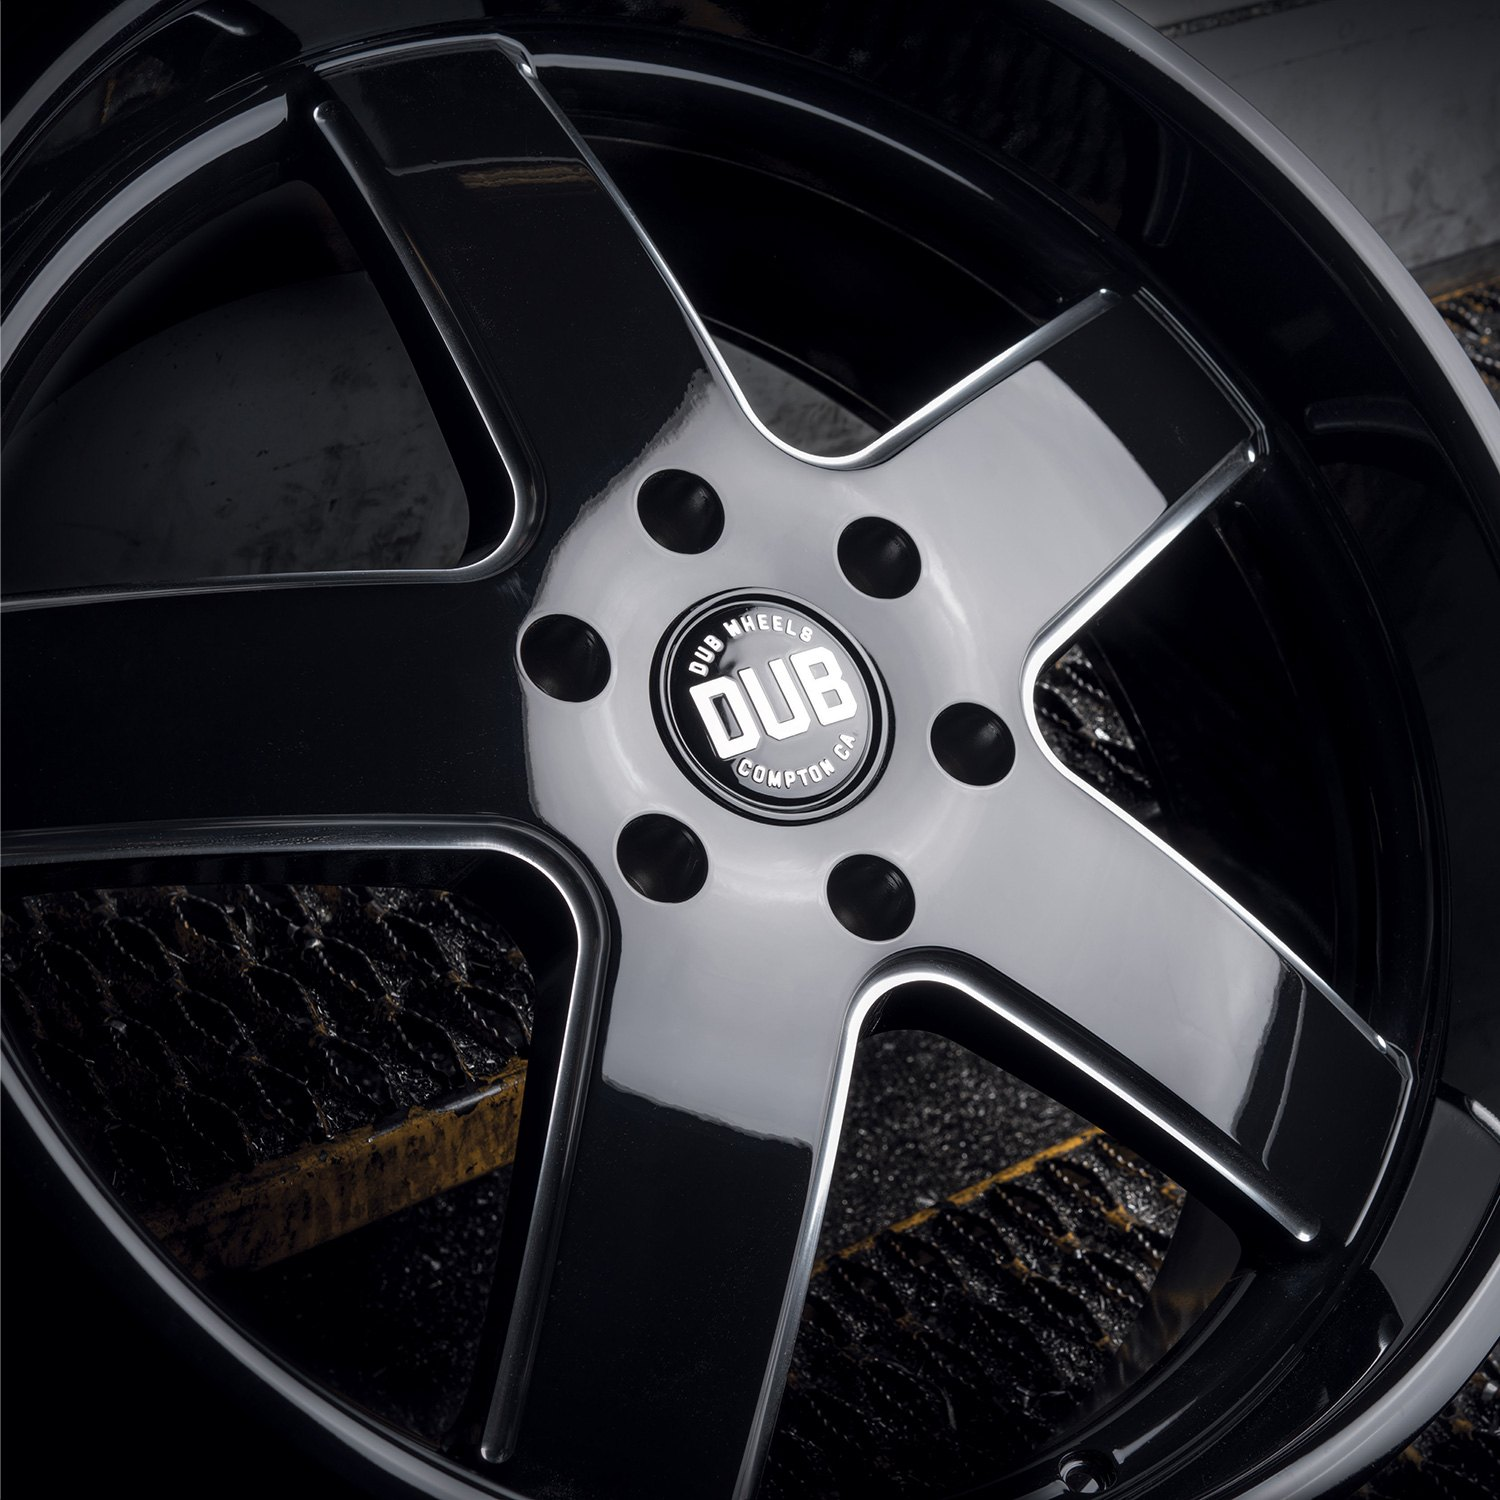 Black Wheels Dub Alloys: Gloss Black With Milled Accents Rims